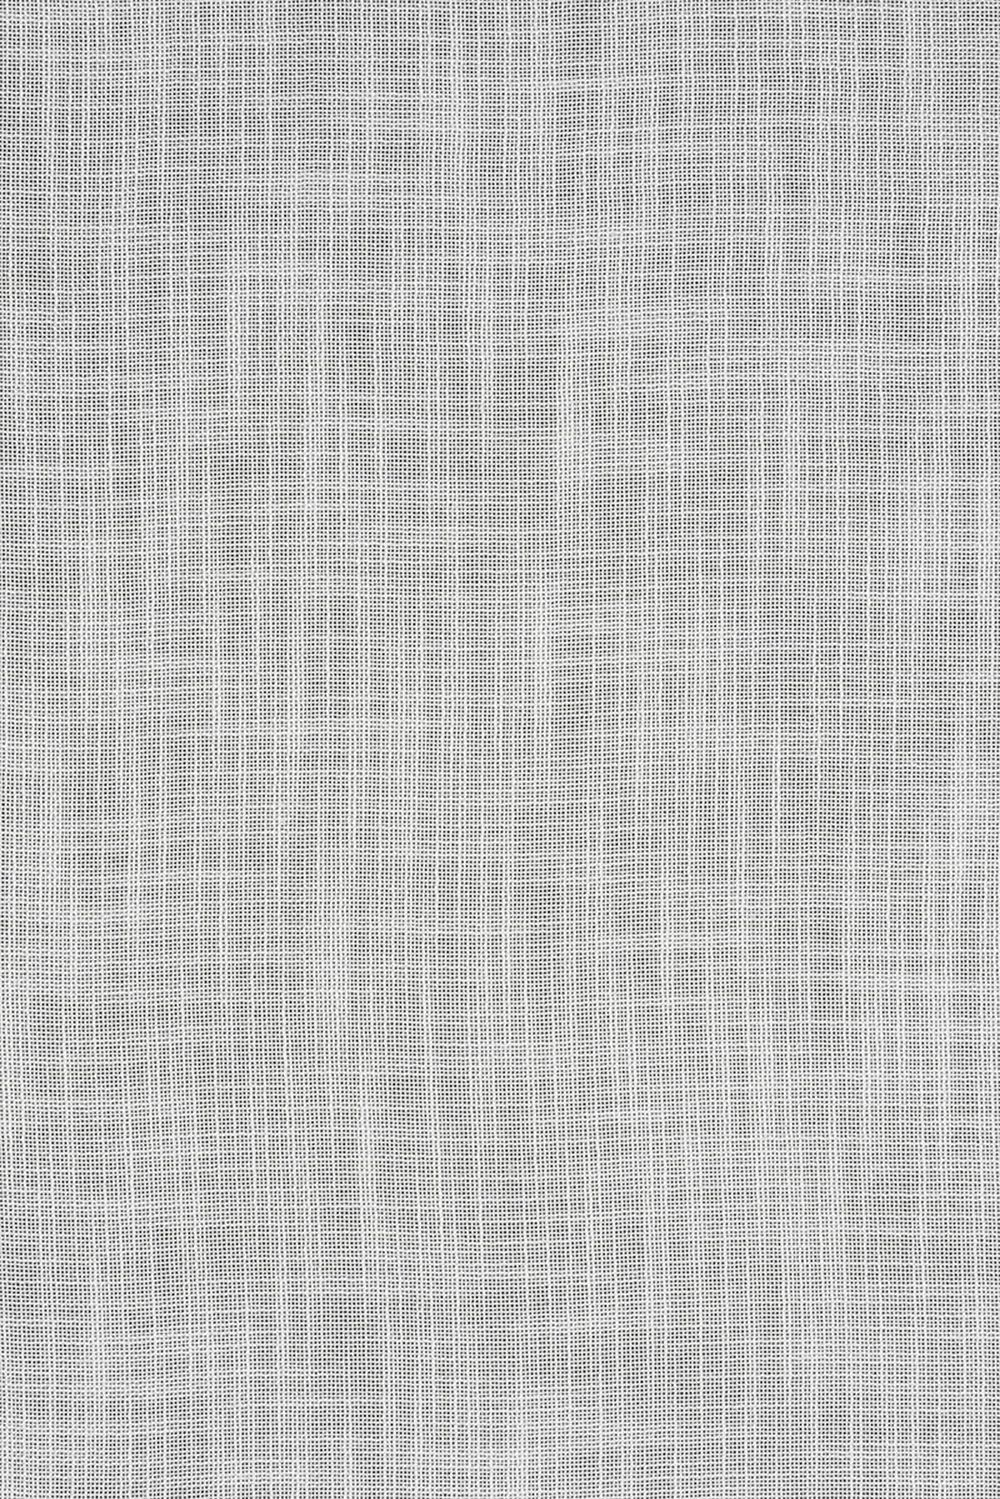 Photo of the fabric Coastal* Blanc swatch by James Dunlop Essentials. Use for Drapery. Style of Plain